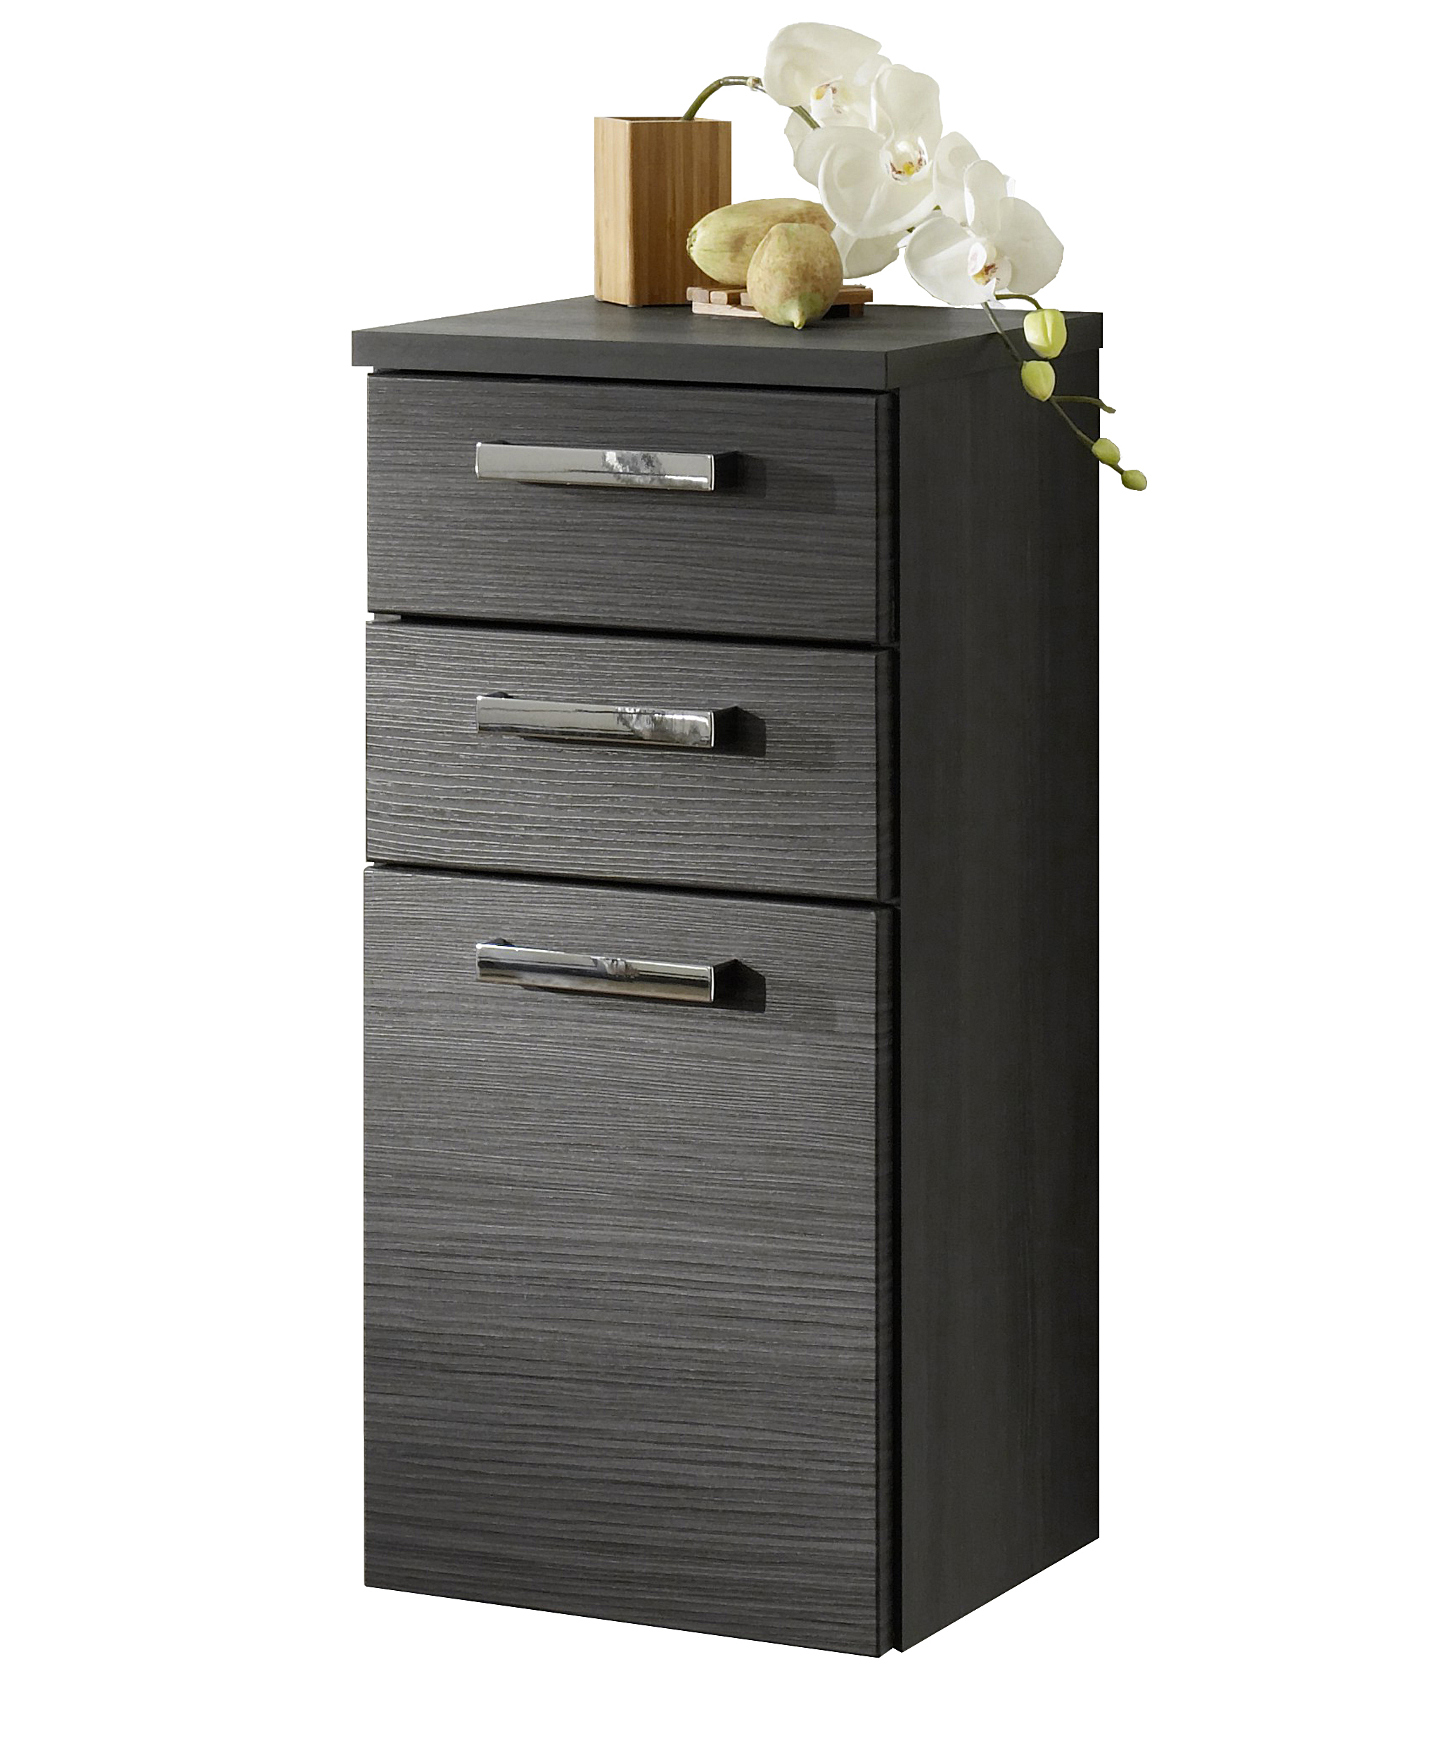 spiegel 30 cm breit amazing garderobe mit spiegel cm breit cm tief np uac with garderobe cm. Black Bedroom Furniture Sets. Home Design Ideas